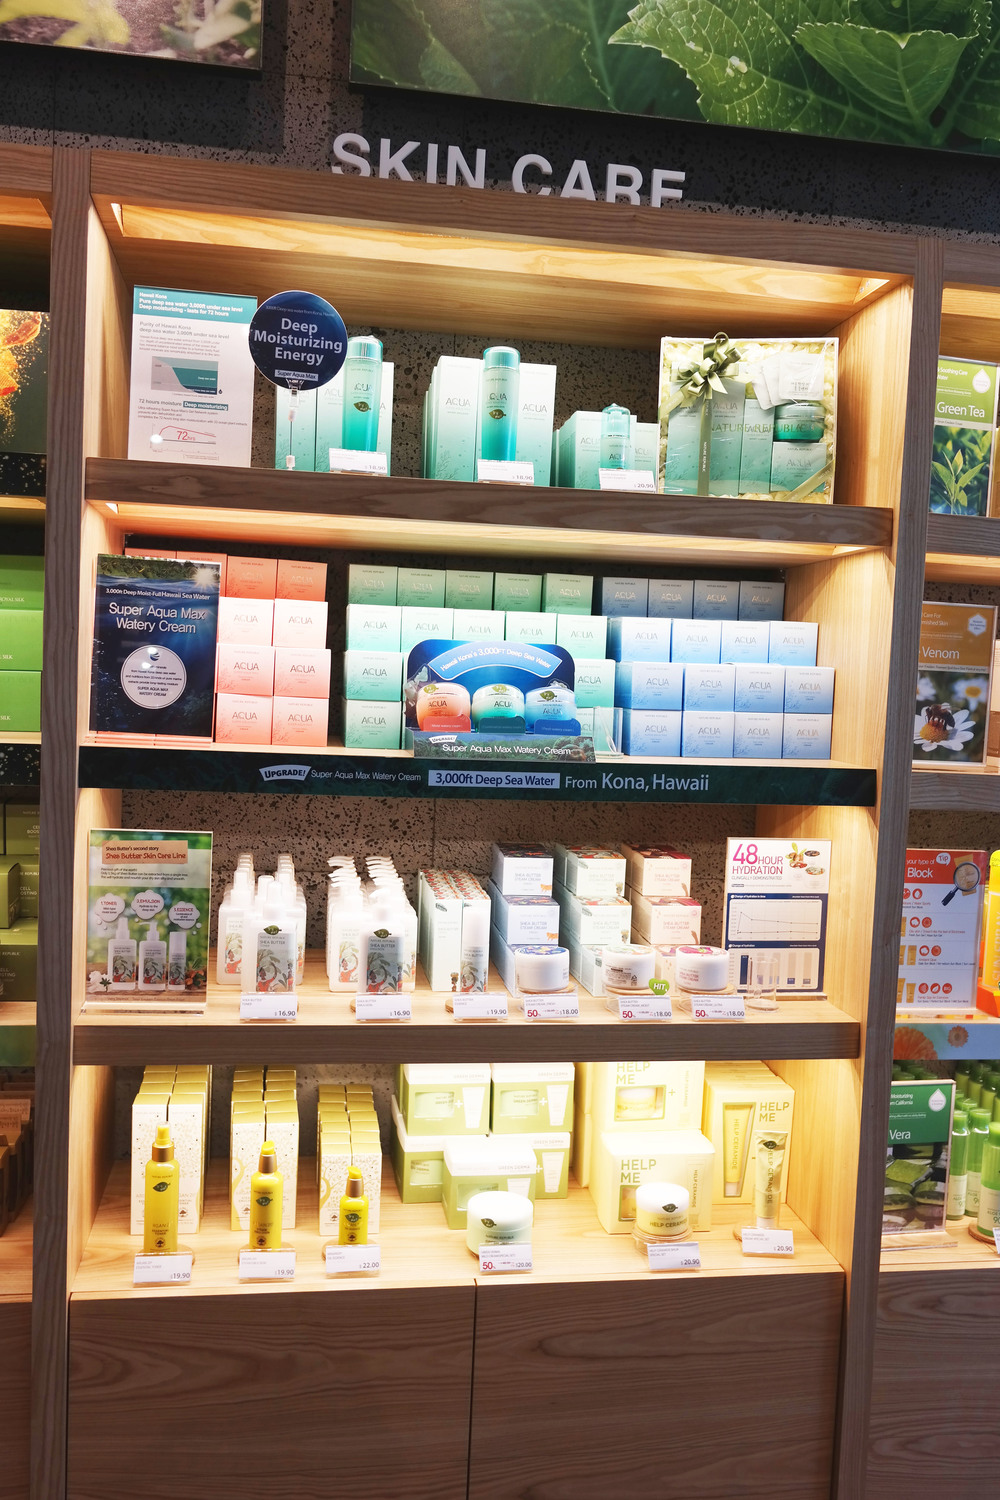 Right now, Nature Republic is heavily promoting their marine science. Awhile ago, they were promoting their steam cream, which I picked up in Myeongdong and actually still have yet to review.